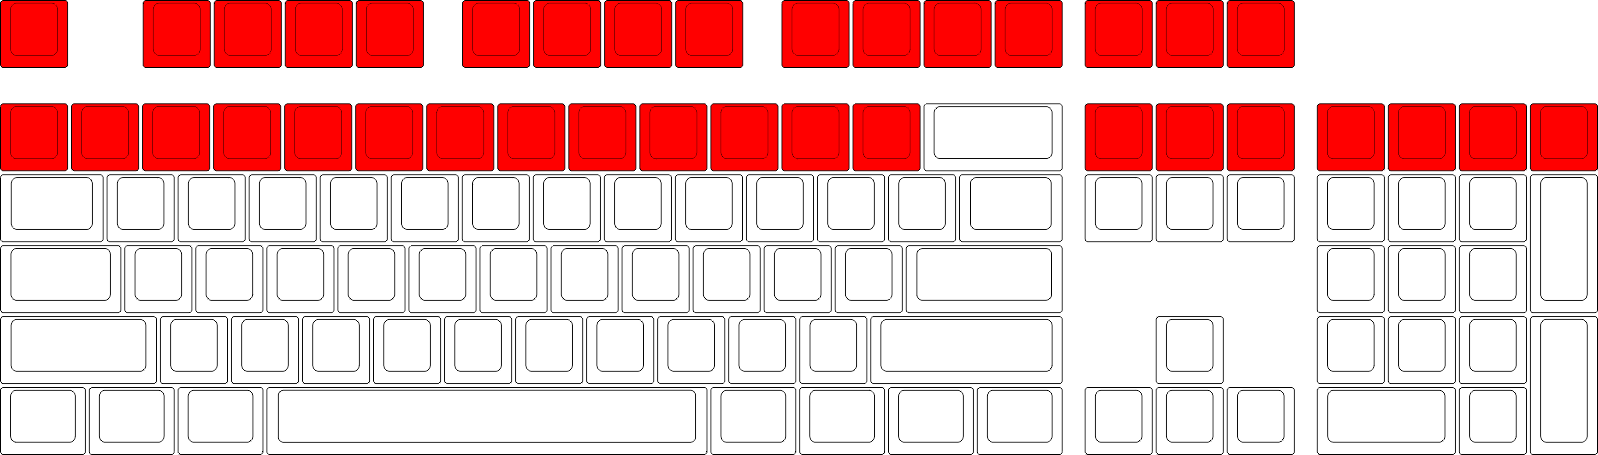 Blank png 1x1. Wasd keyboards row size